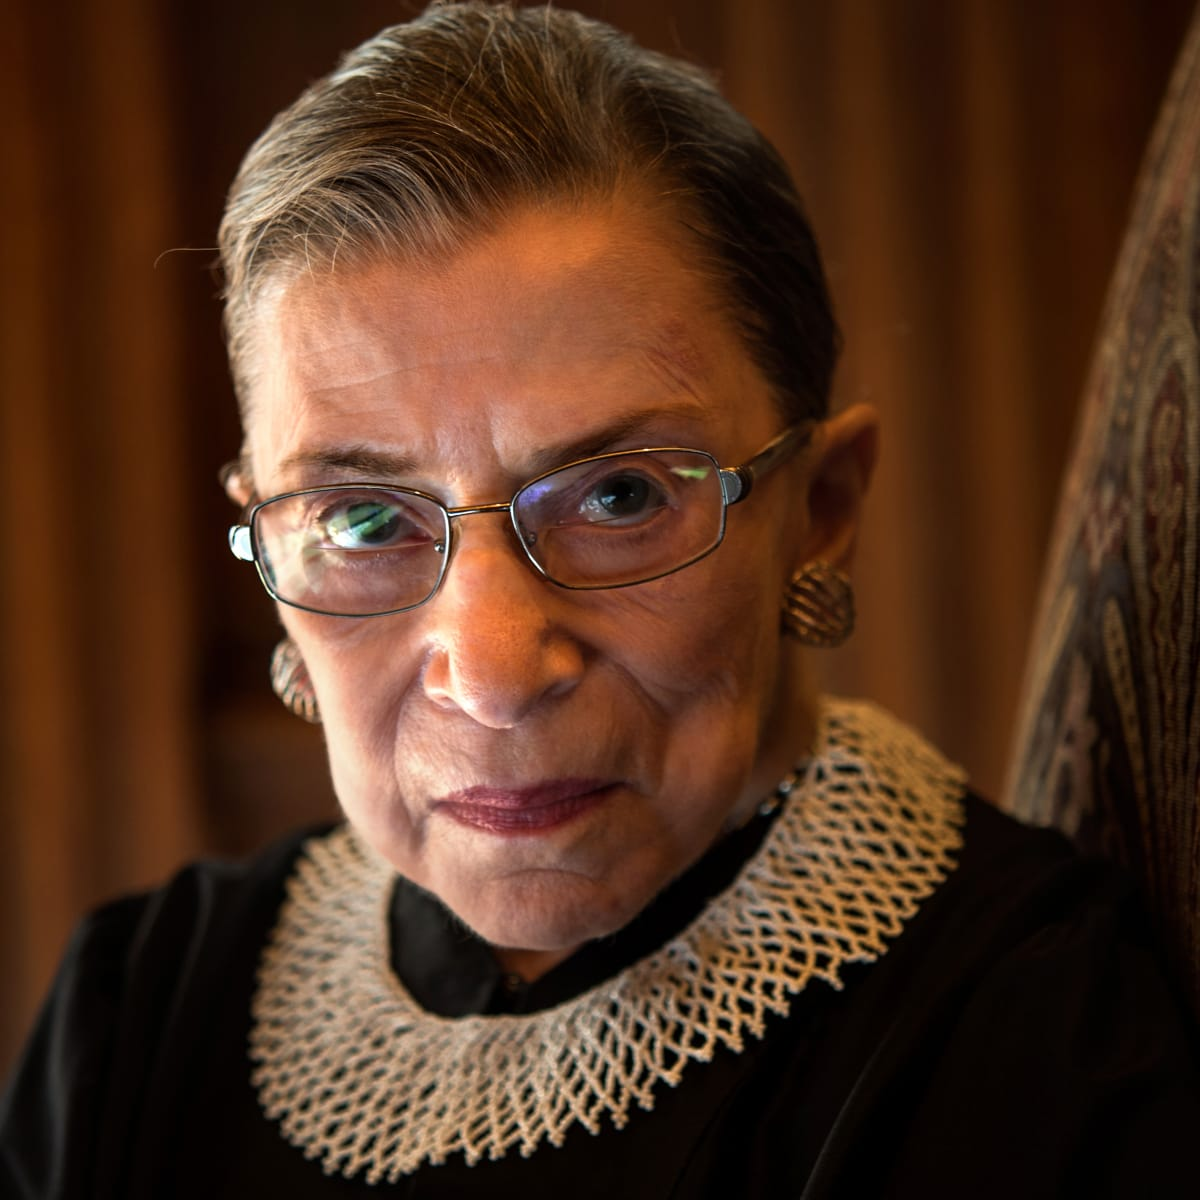 'Fight for the things you care about, but do it in a way that will lead others to join you.' RIP, RBG